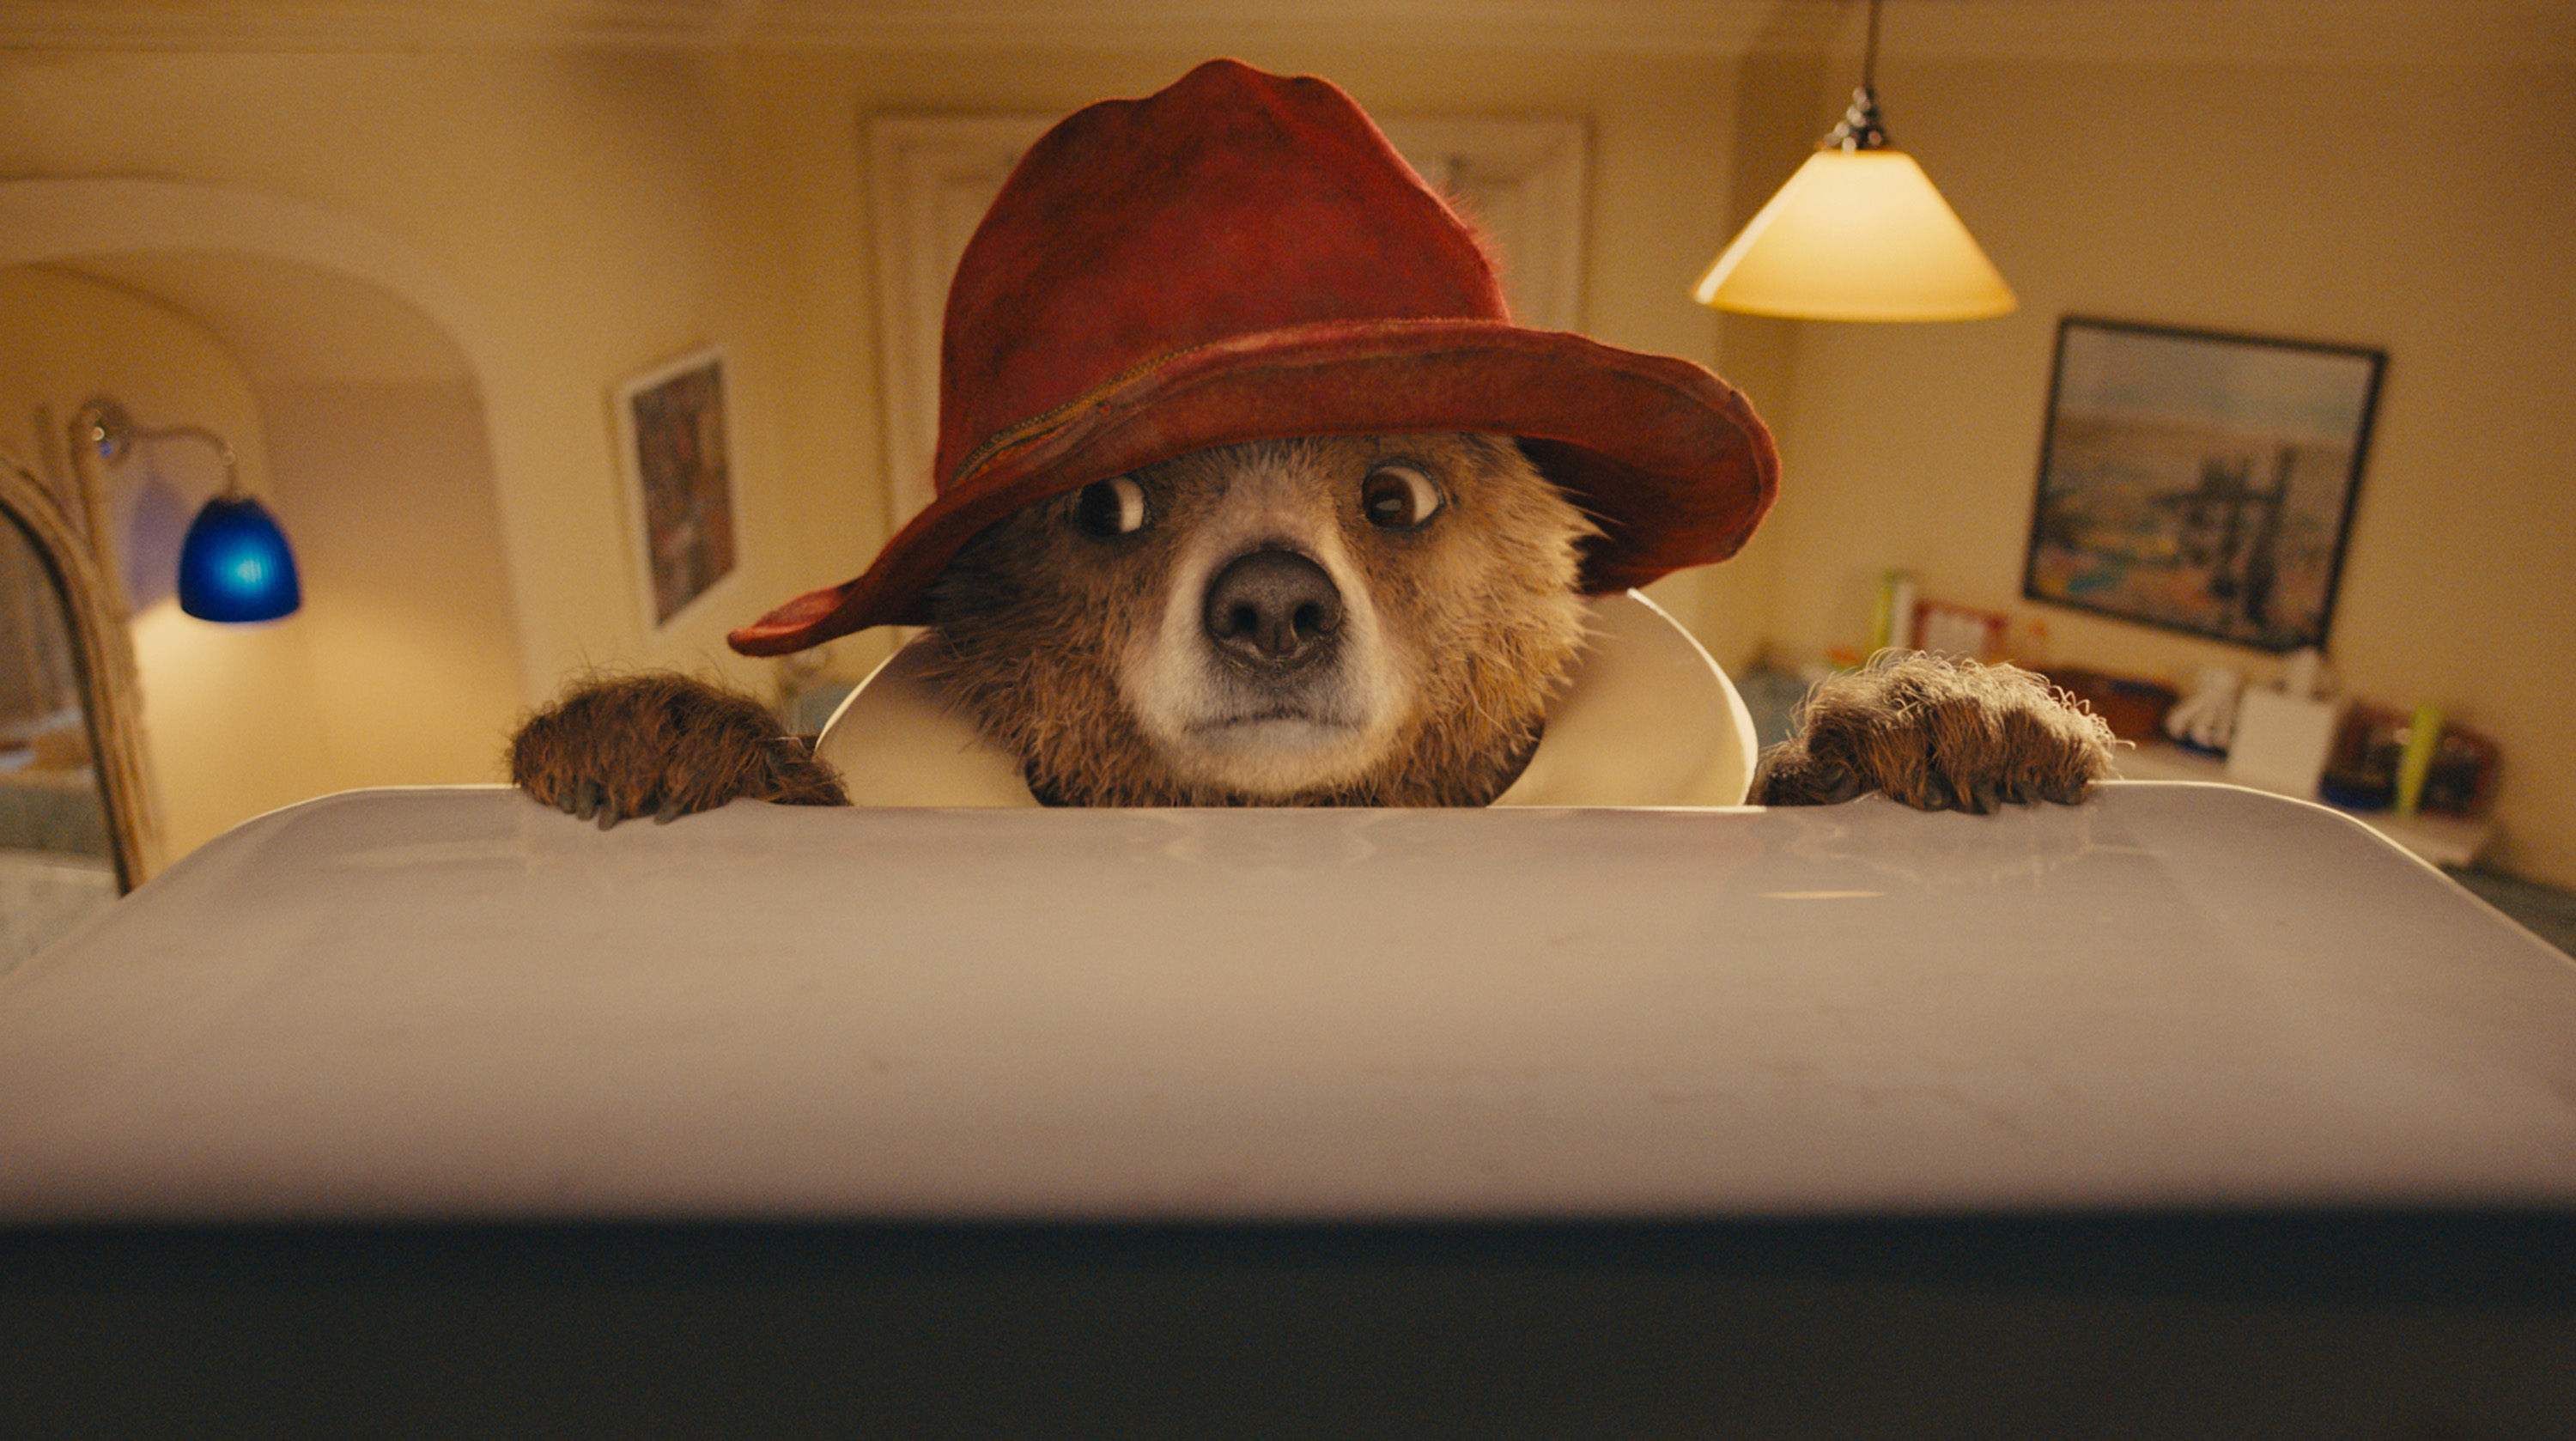 'Paddington' is one of the free movies that will be shown at the Aurora Theatre.